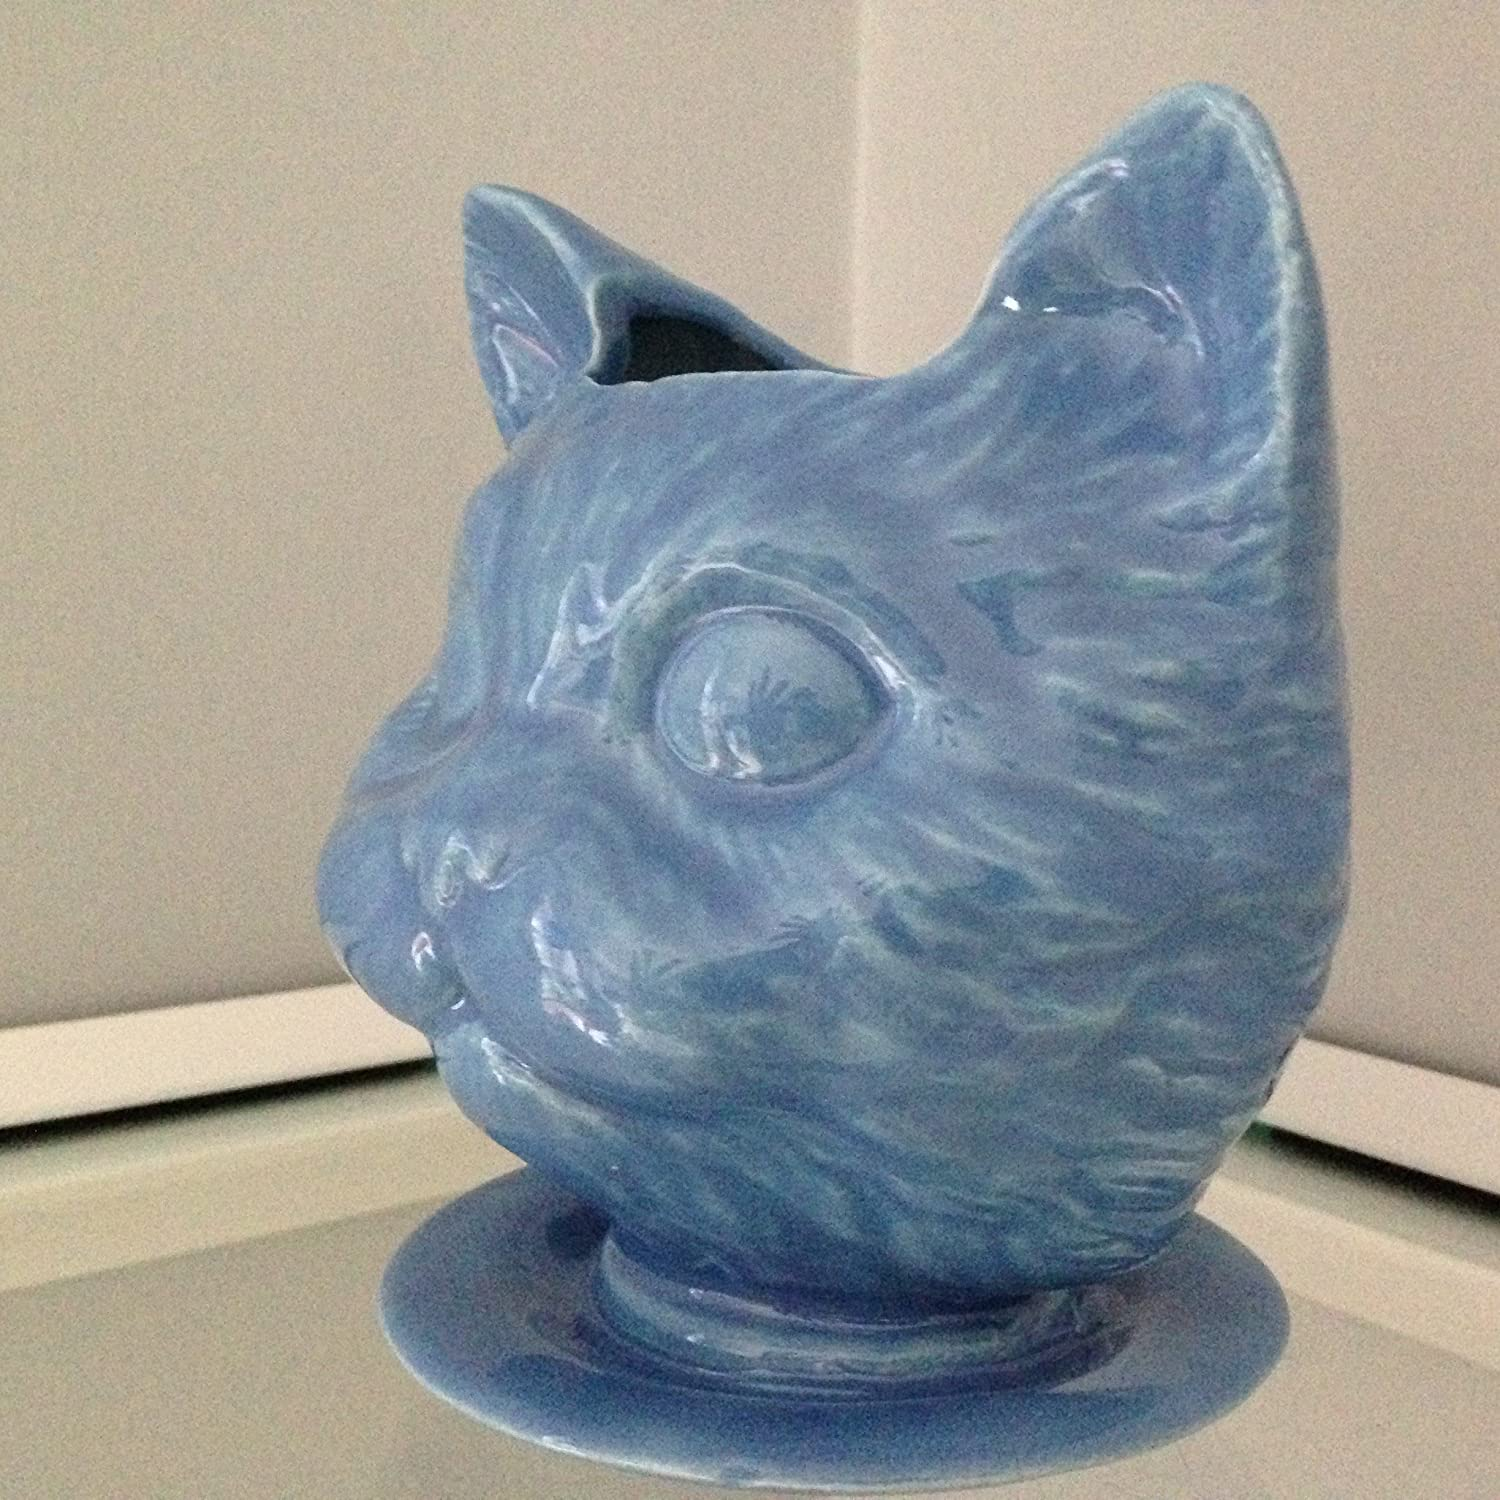 Amazon ceramic cat pot succulent herb planter blue cat doll amazon ceramic cat pot succulent herb planter blue cat doll head ceramic planter on saucer with drain holes handcrafted gift desktop pencil holder reviewsmspy